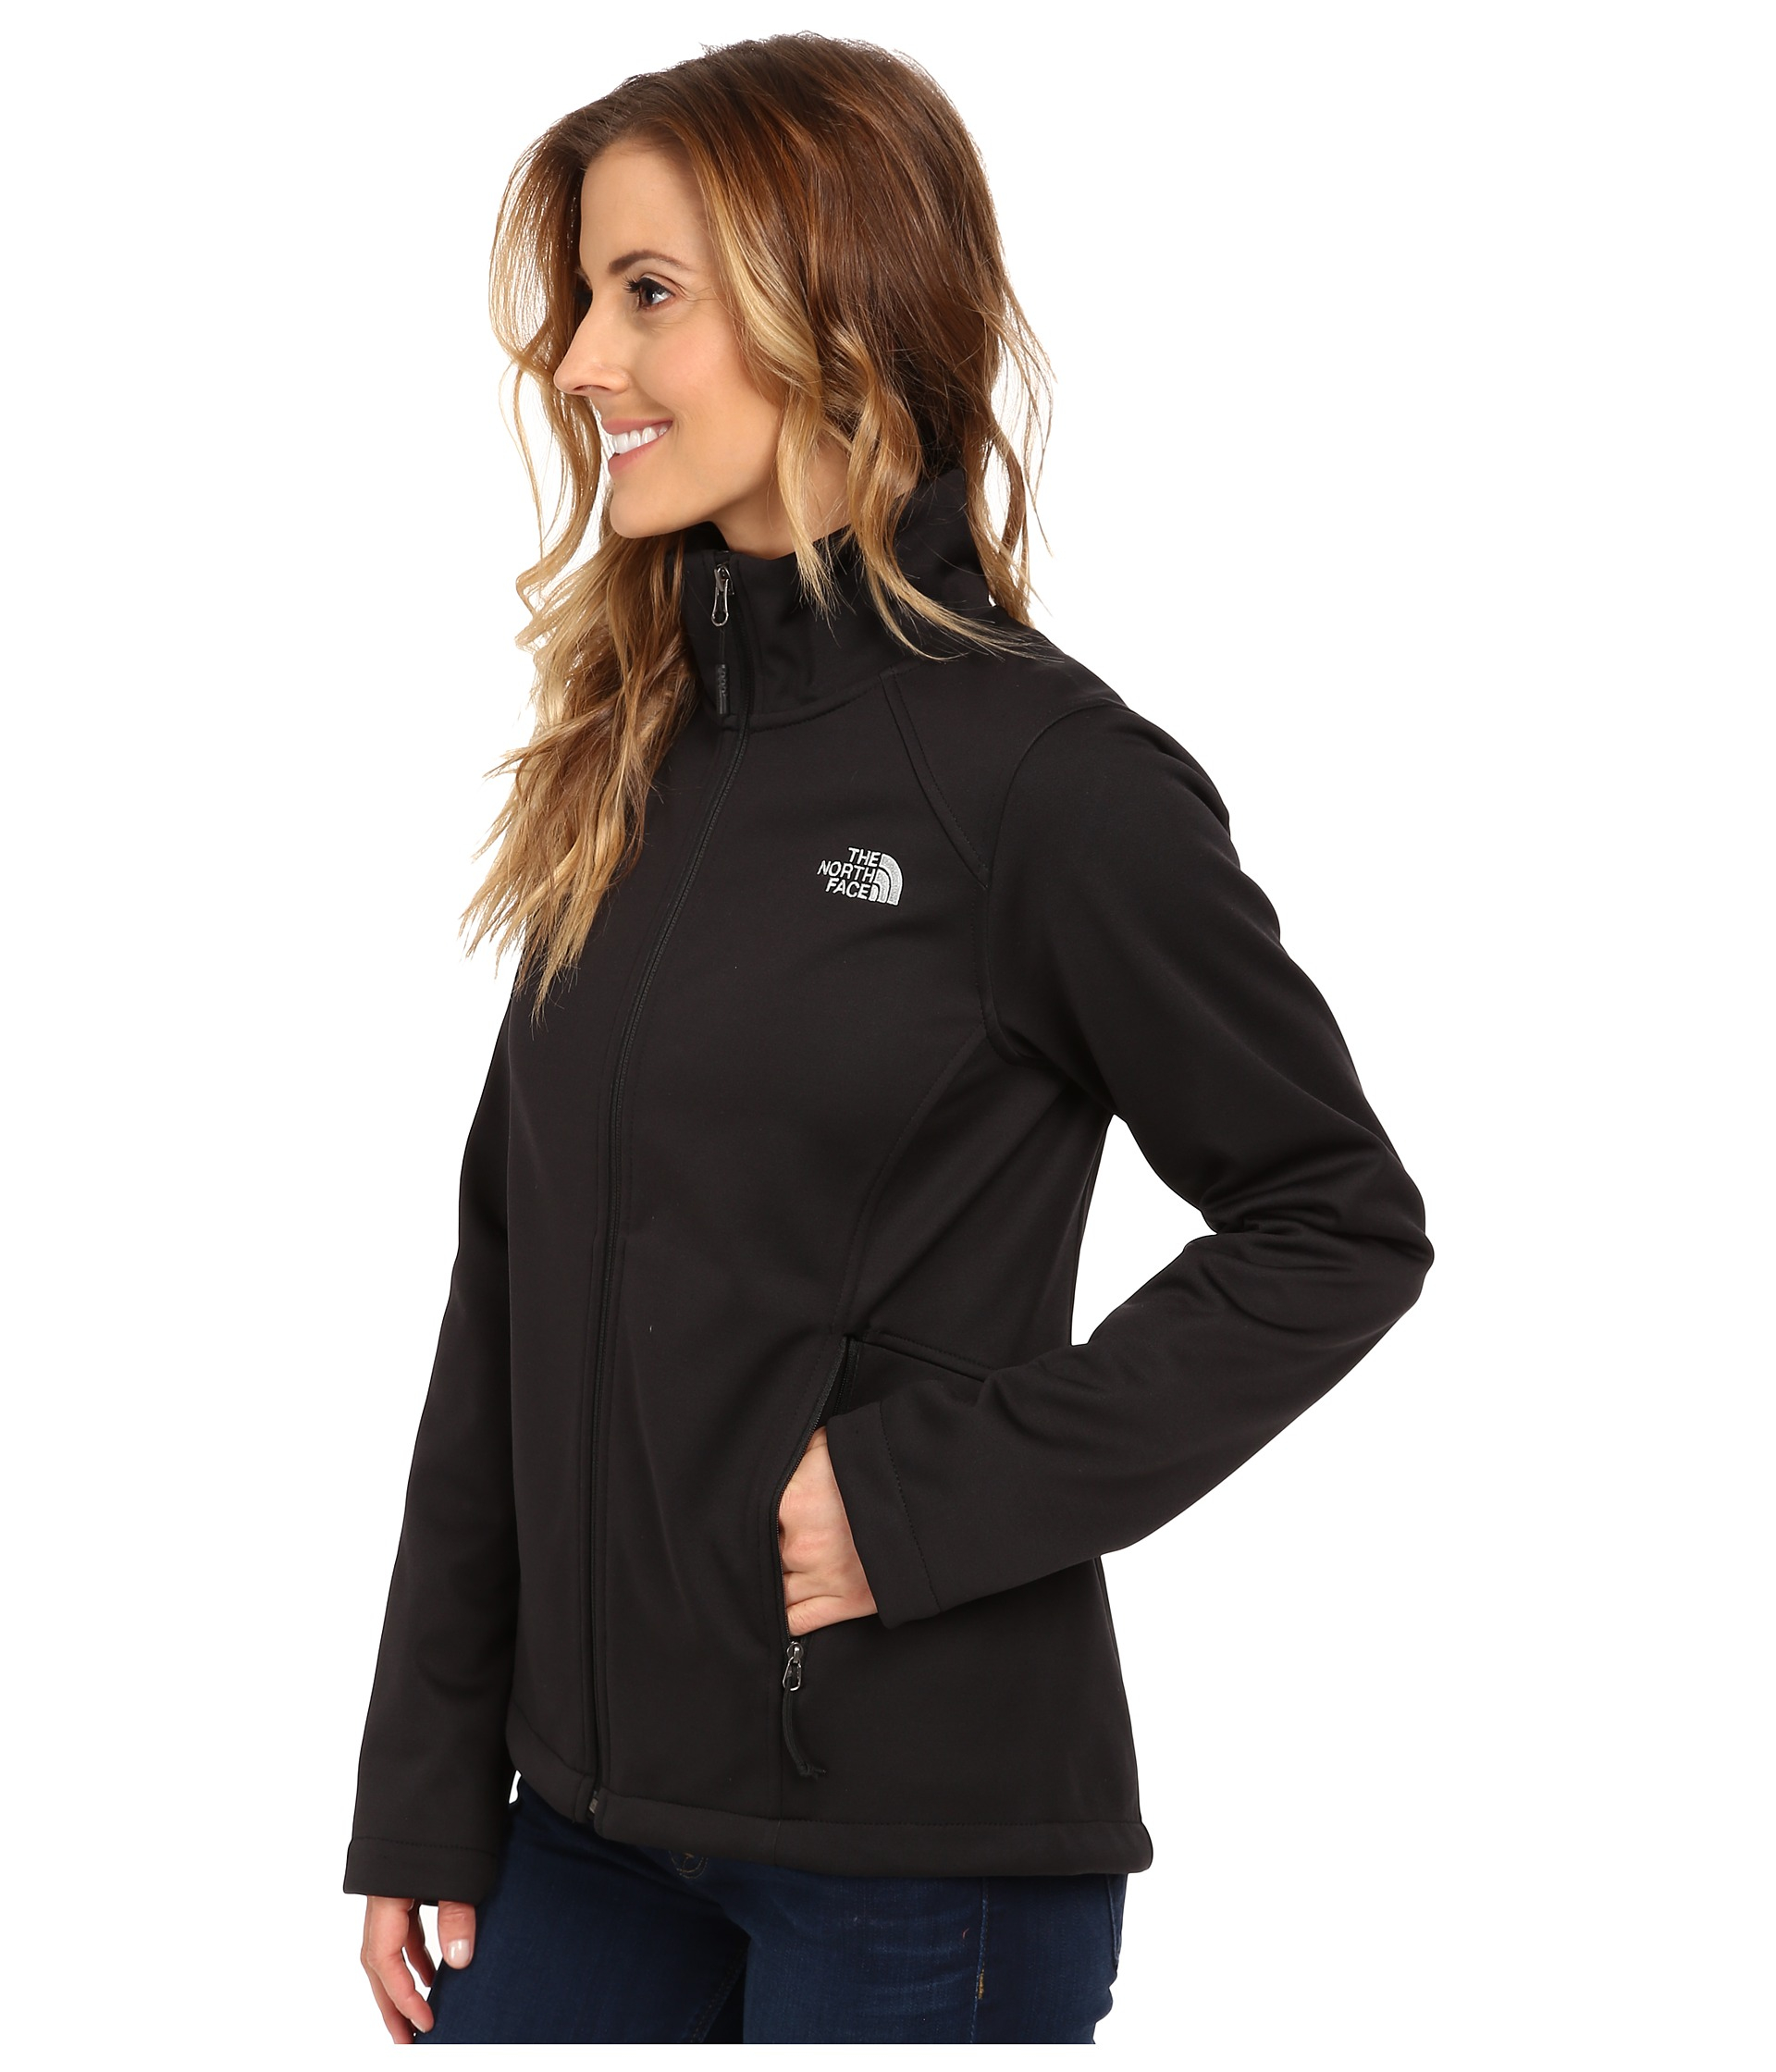 de1b2b28aa Lyst - The North Face Canyonwall Jacket in Black